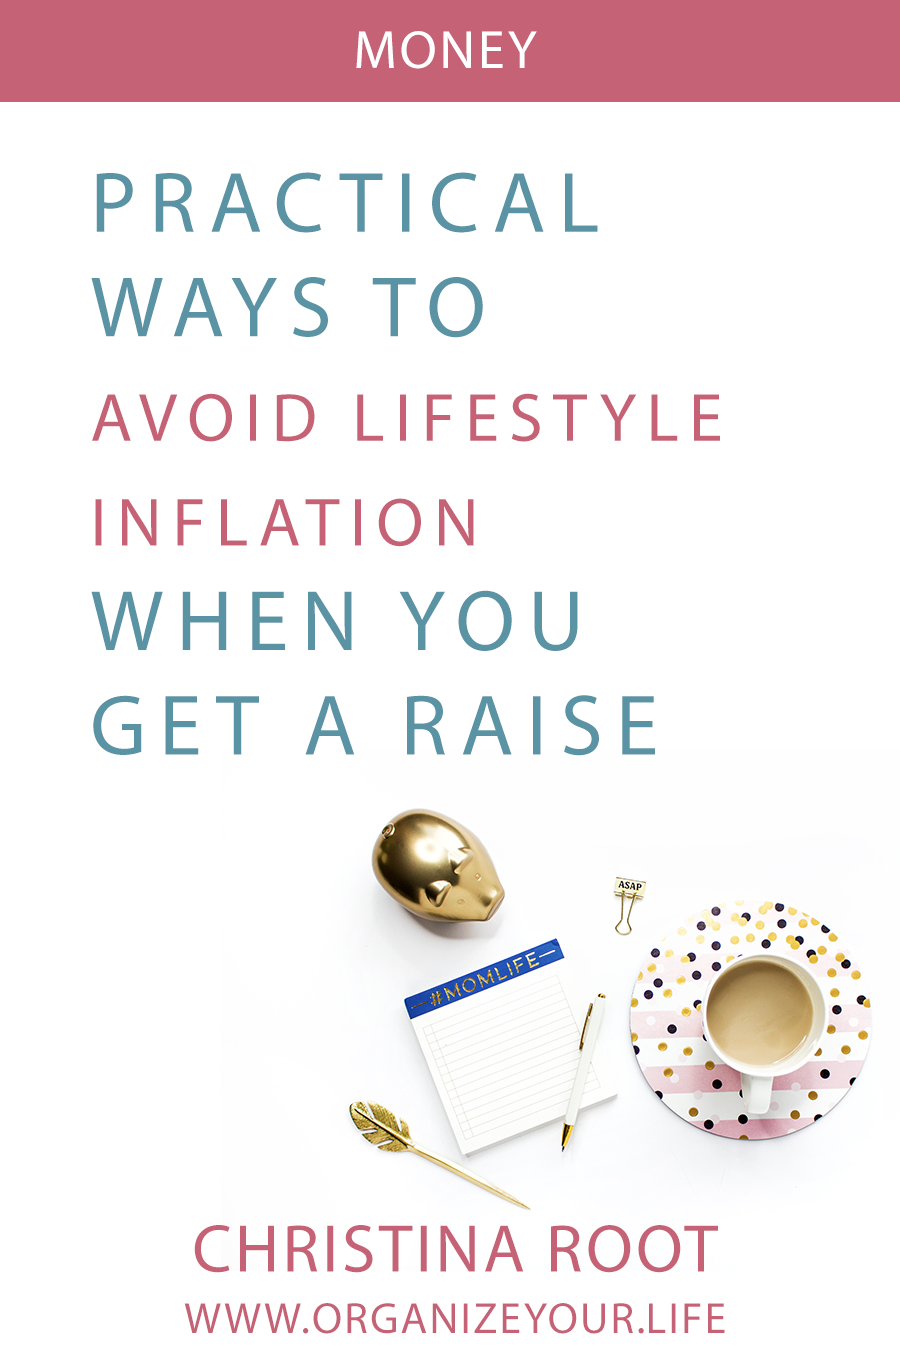 3 Practical Ways to Avoid Lifestyle Inflation When You Get a Raise